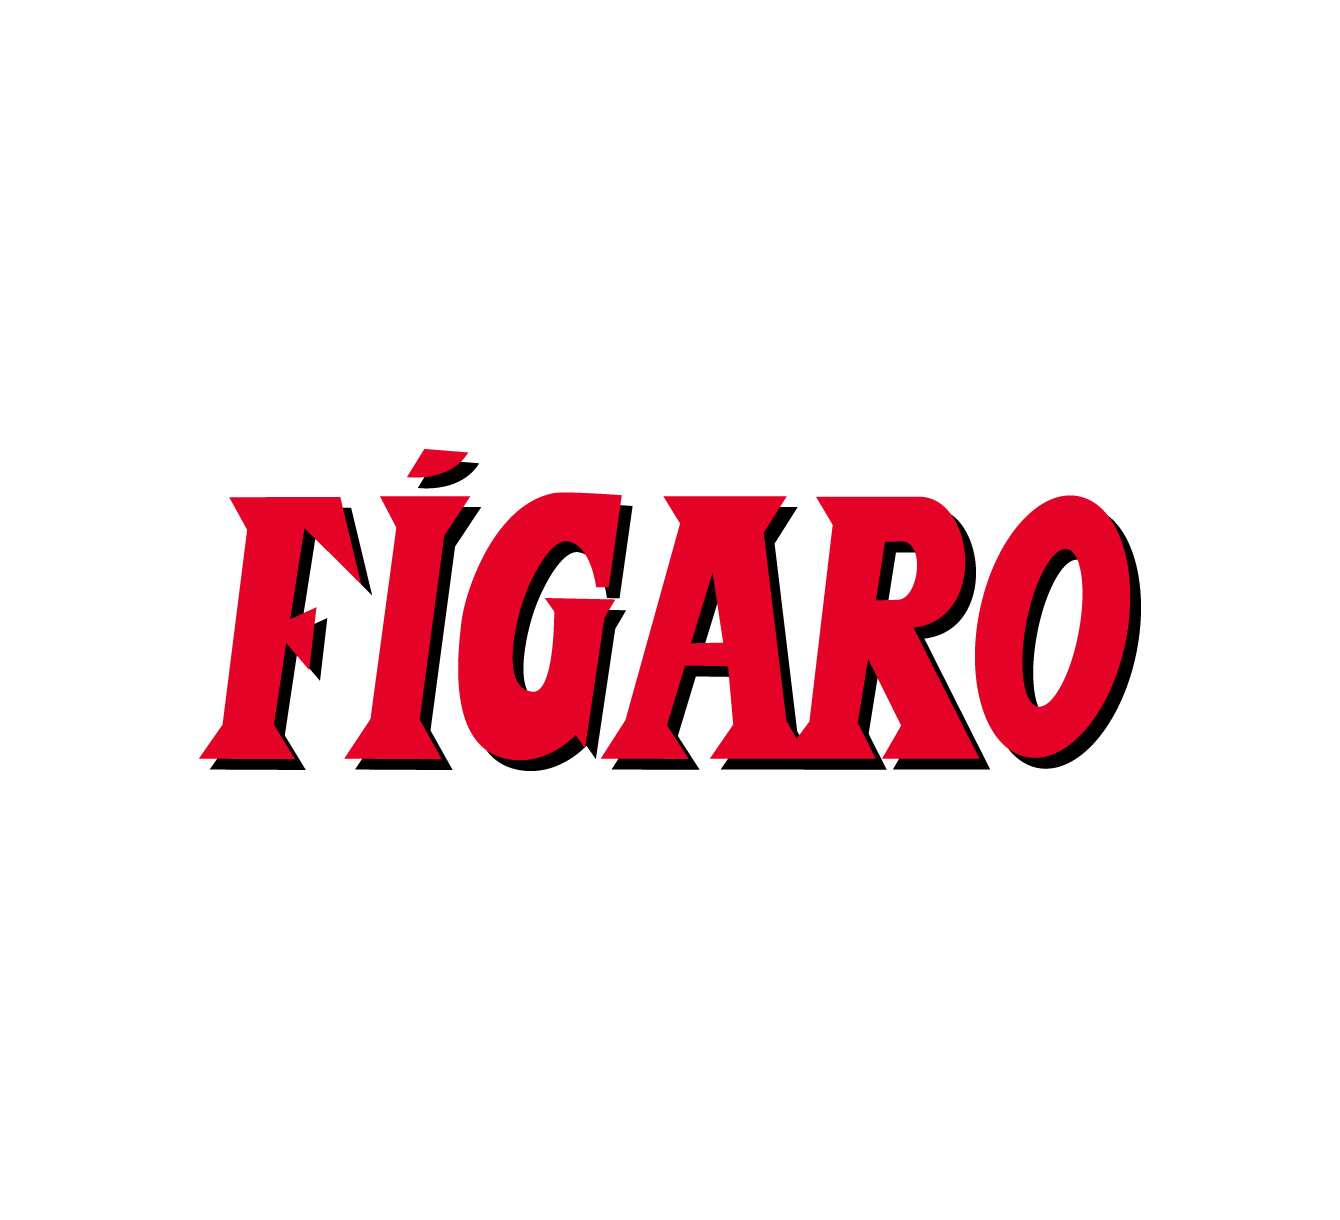 figaro logo english 1